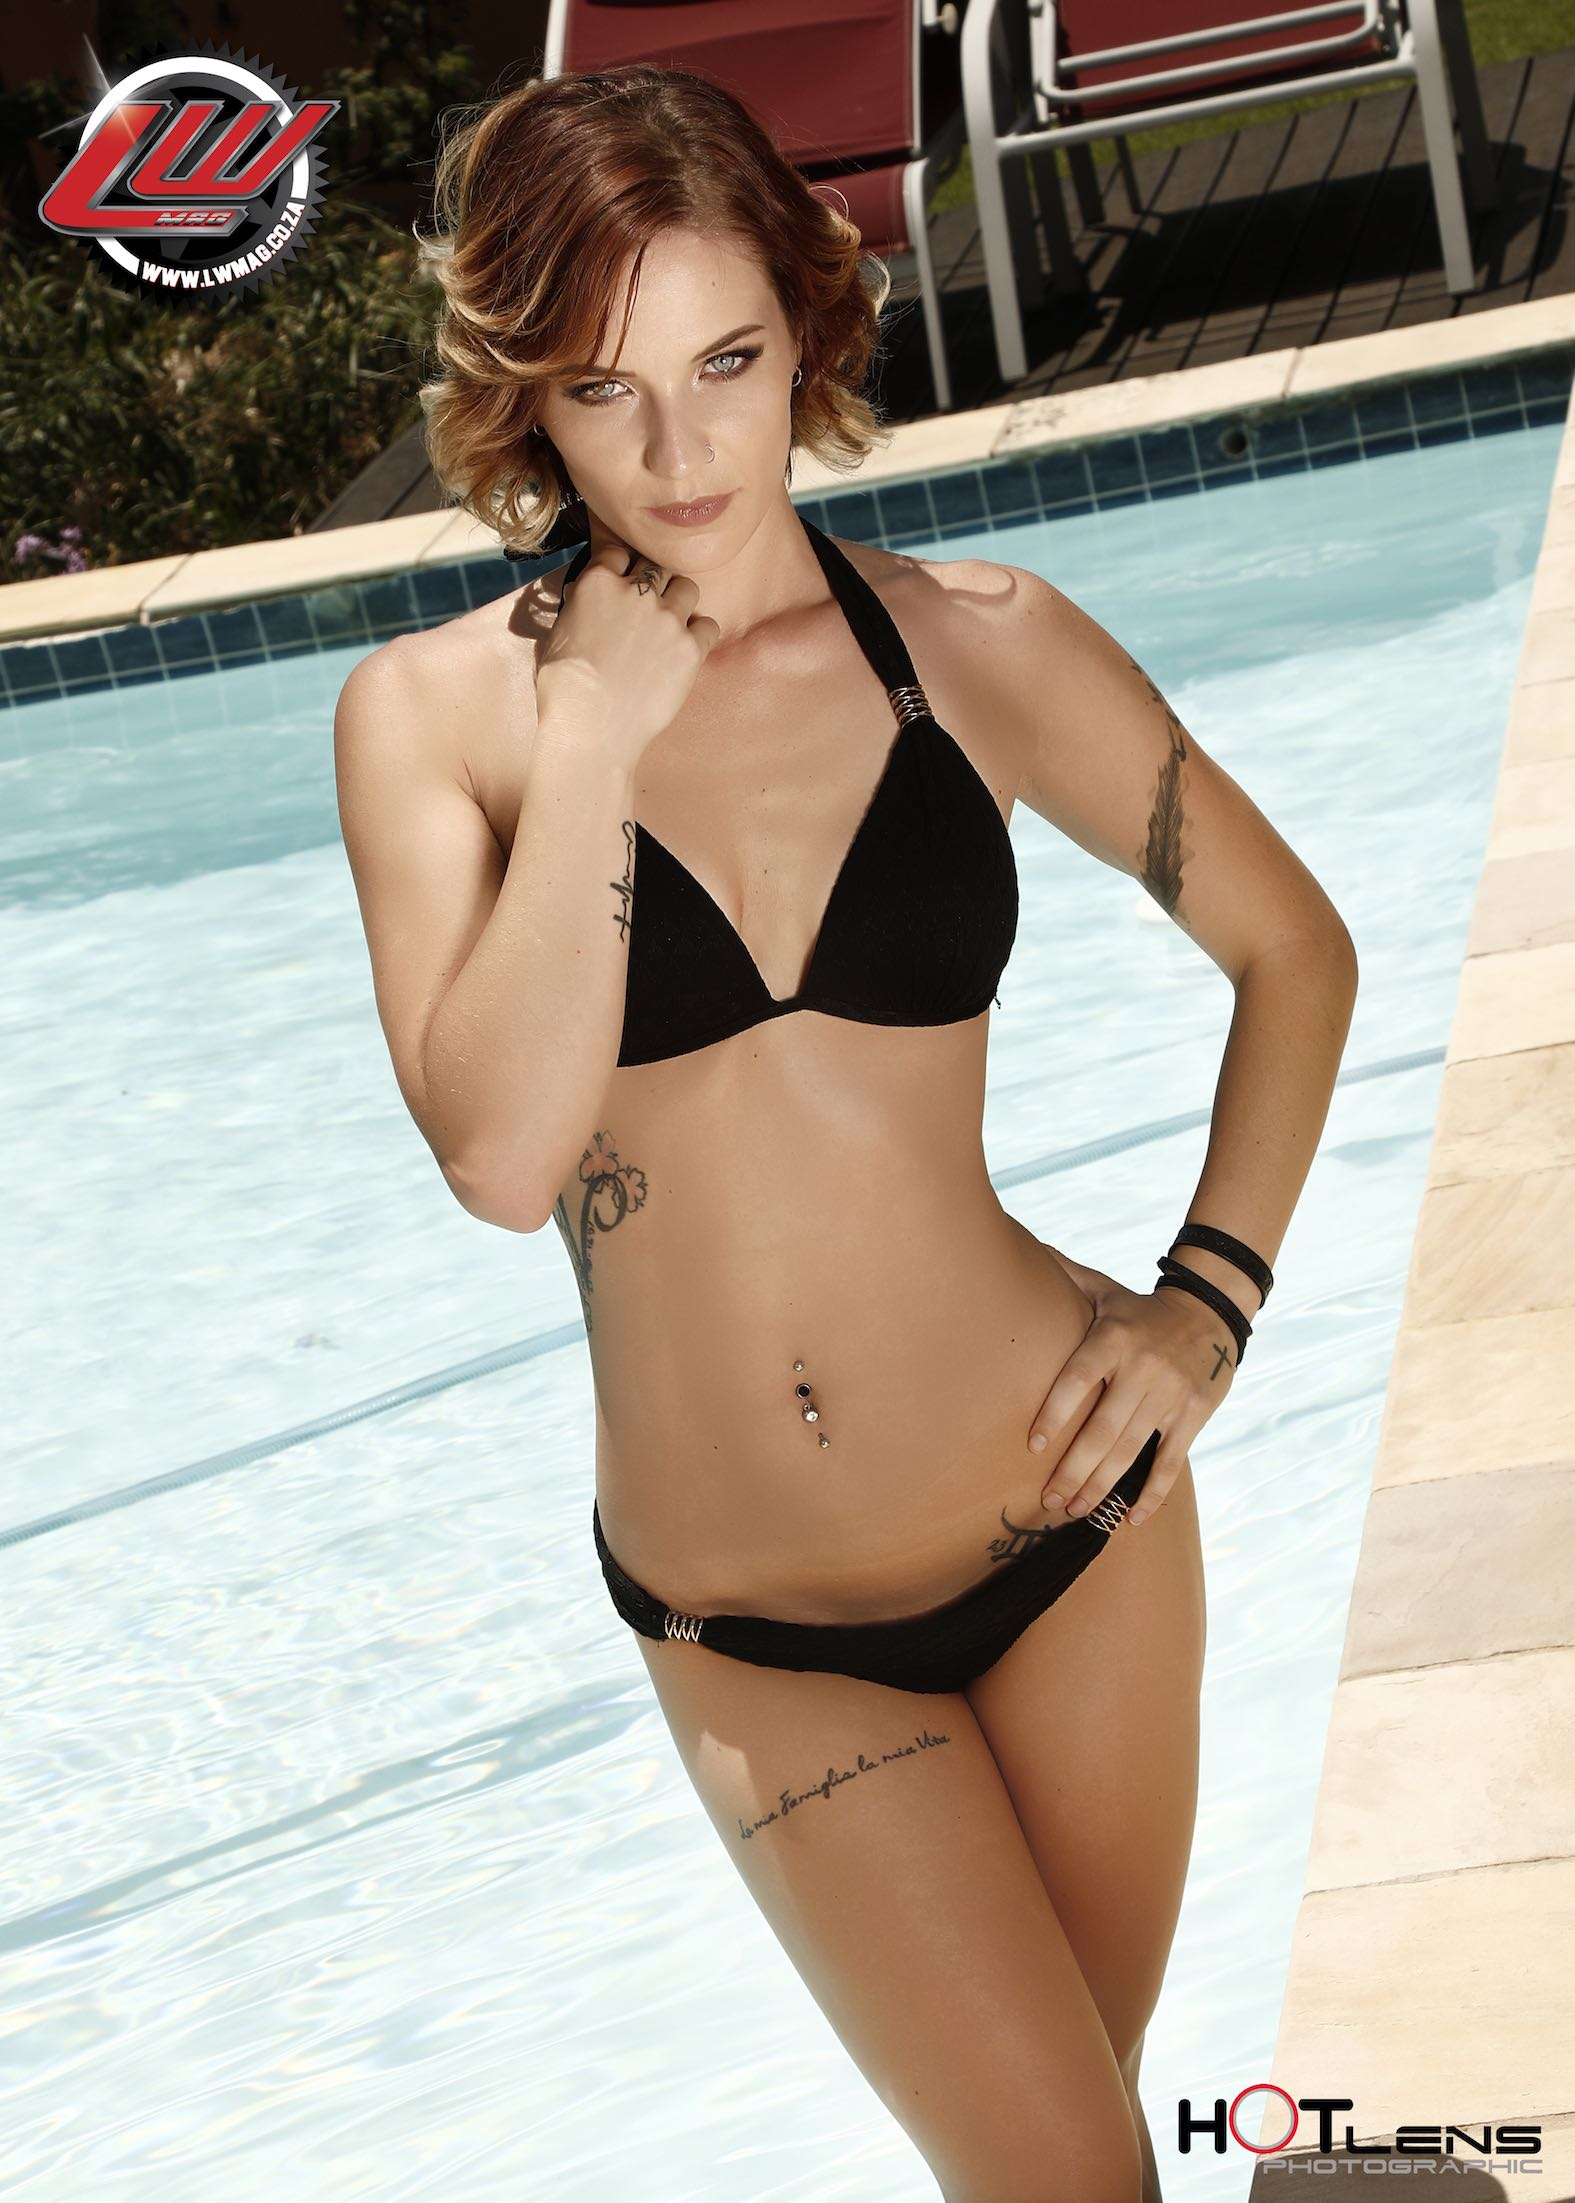 Our South African Girls feature with Lianne Herbst